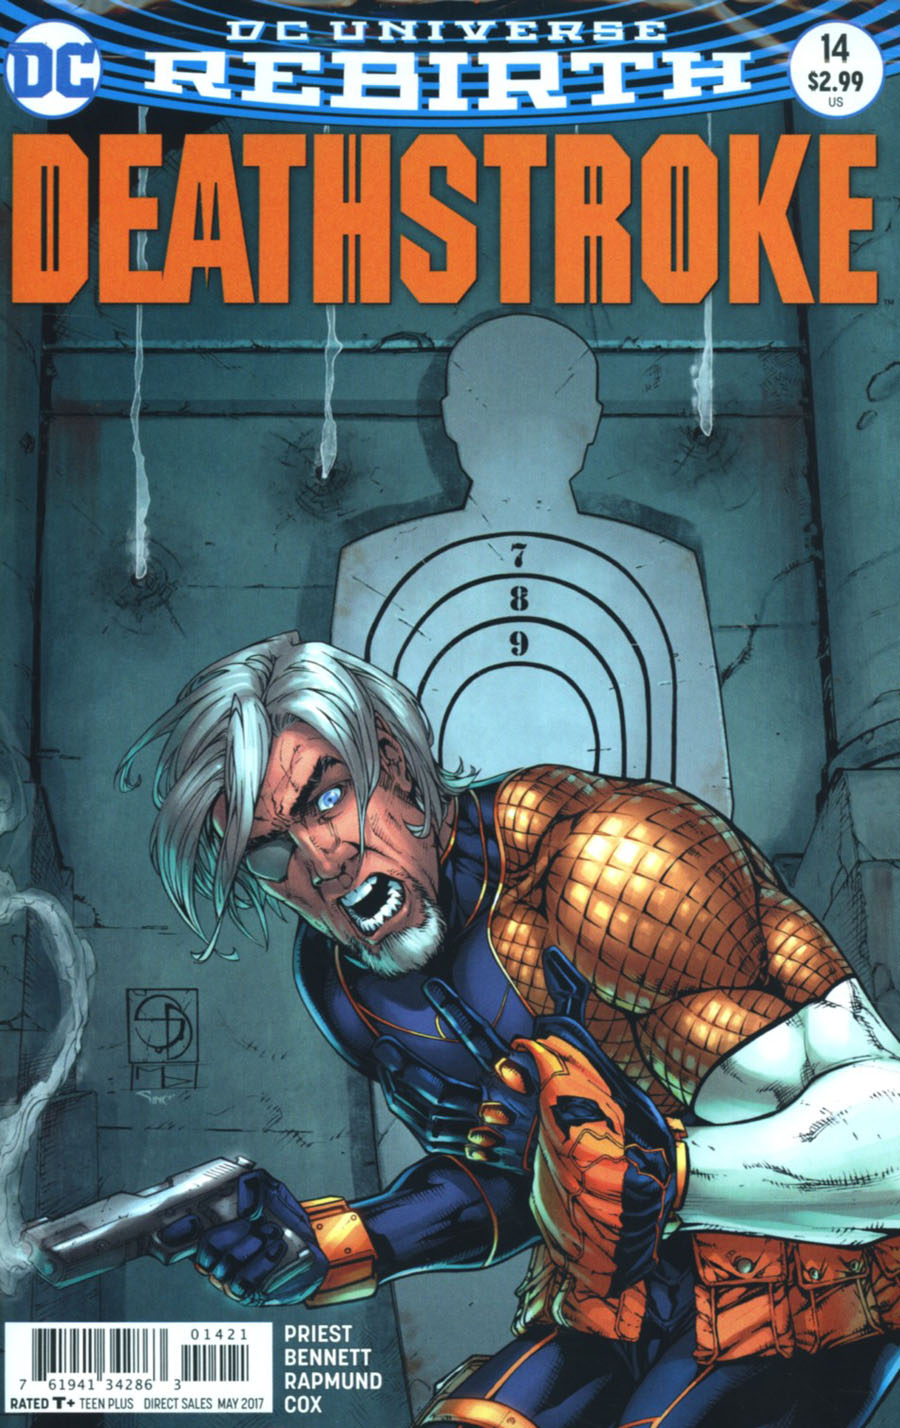 Deathstroke Vol 4 #14 Cover B Variant Shane Davis Cover With Polybag